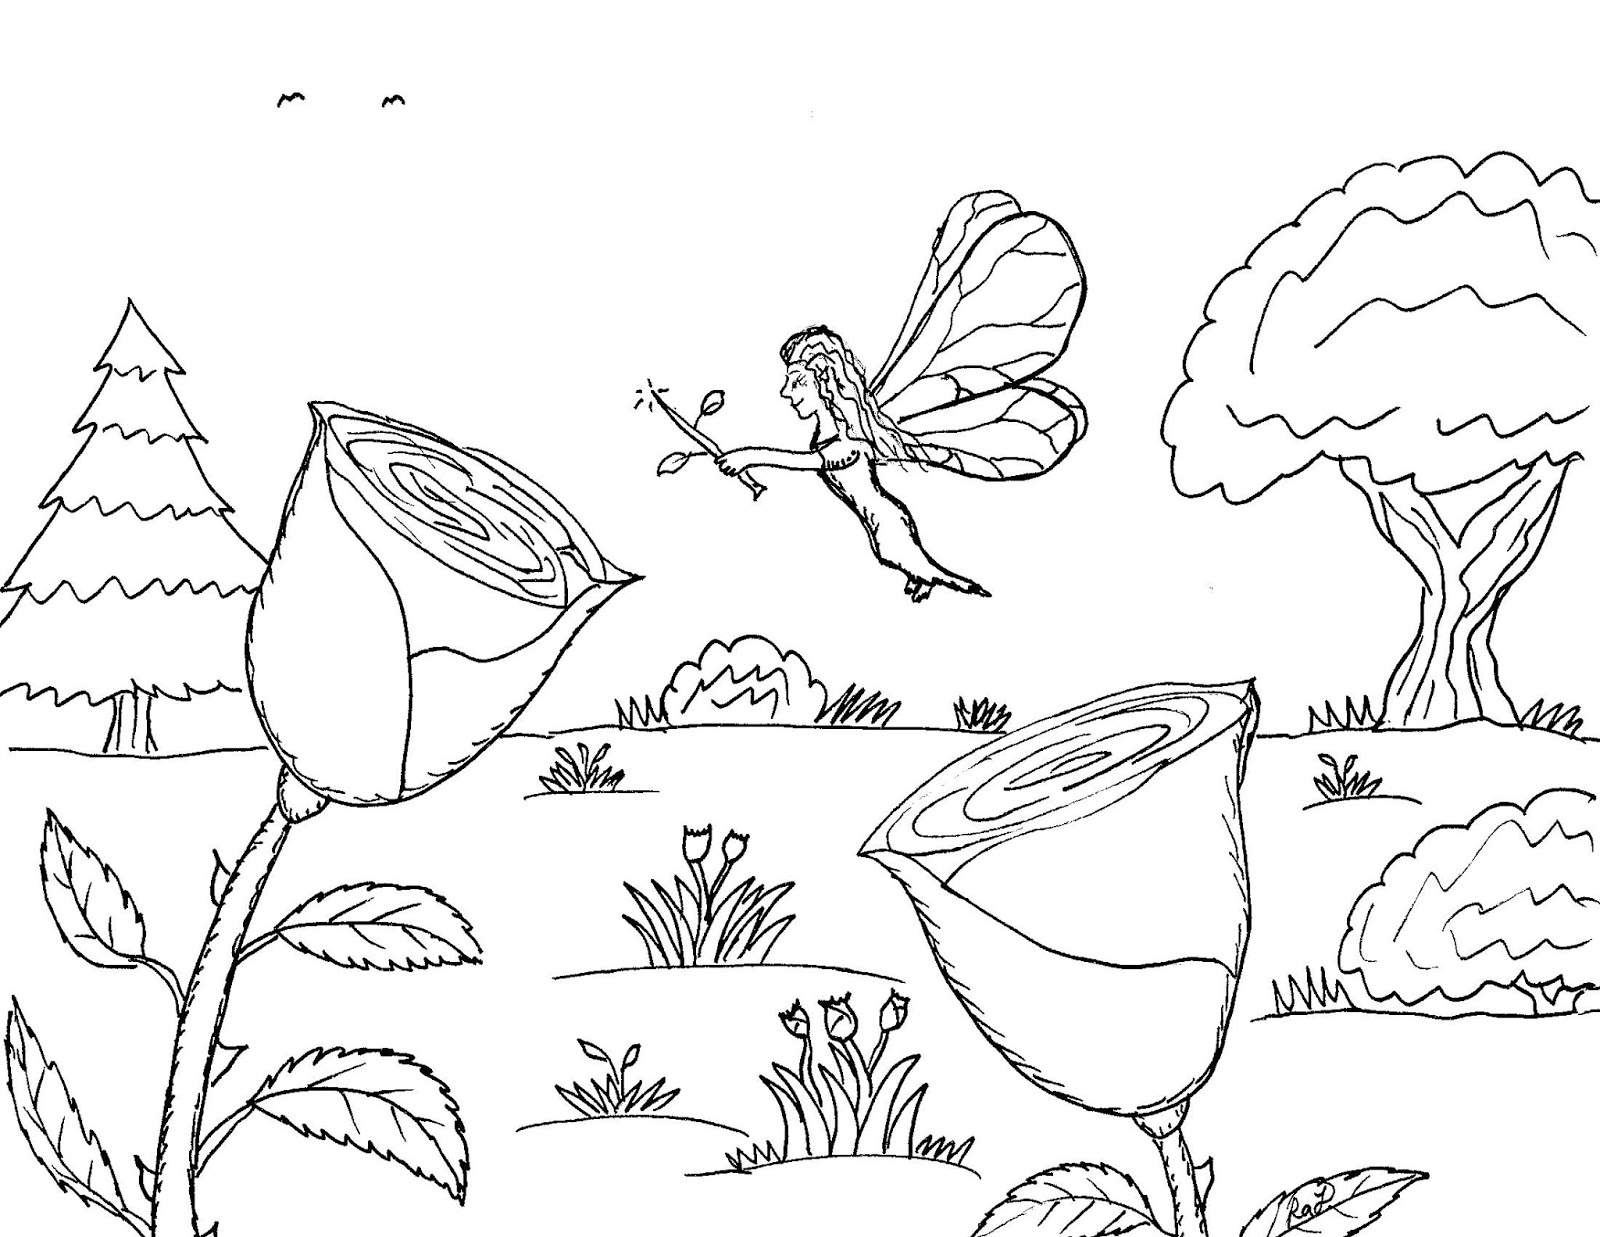 Robin\'s Great Coloring Pages: Flower Fairy at Work